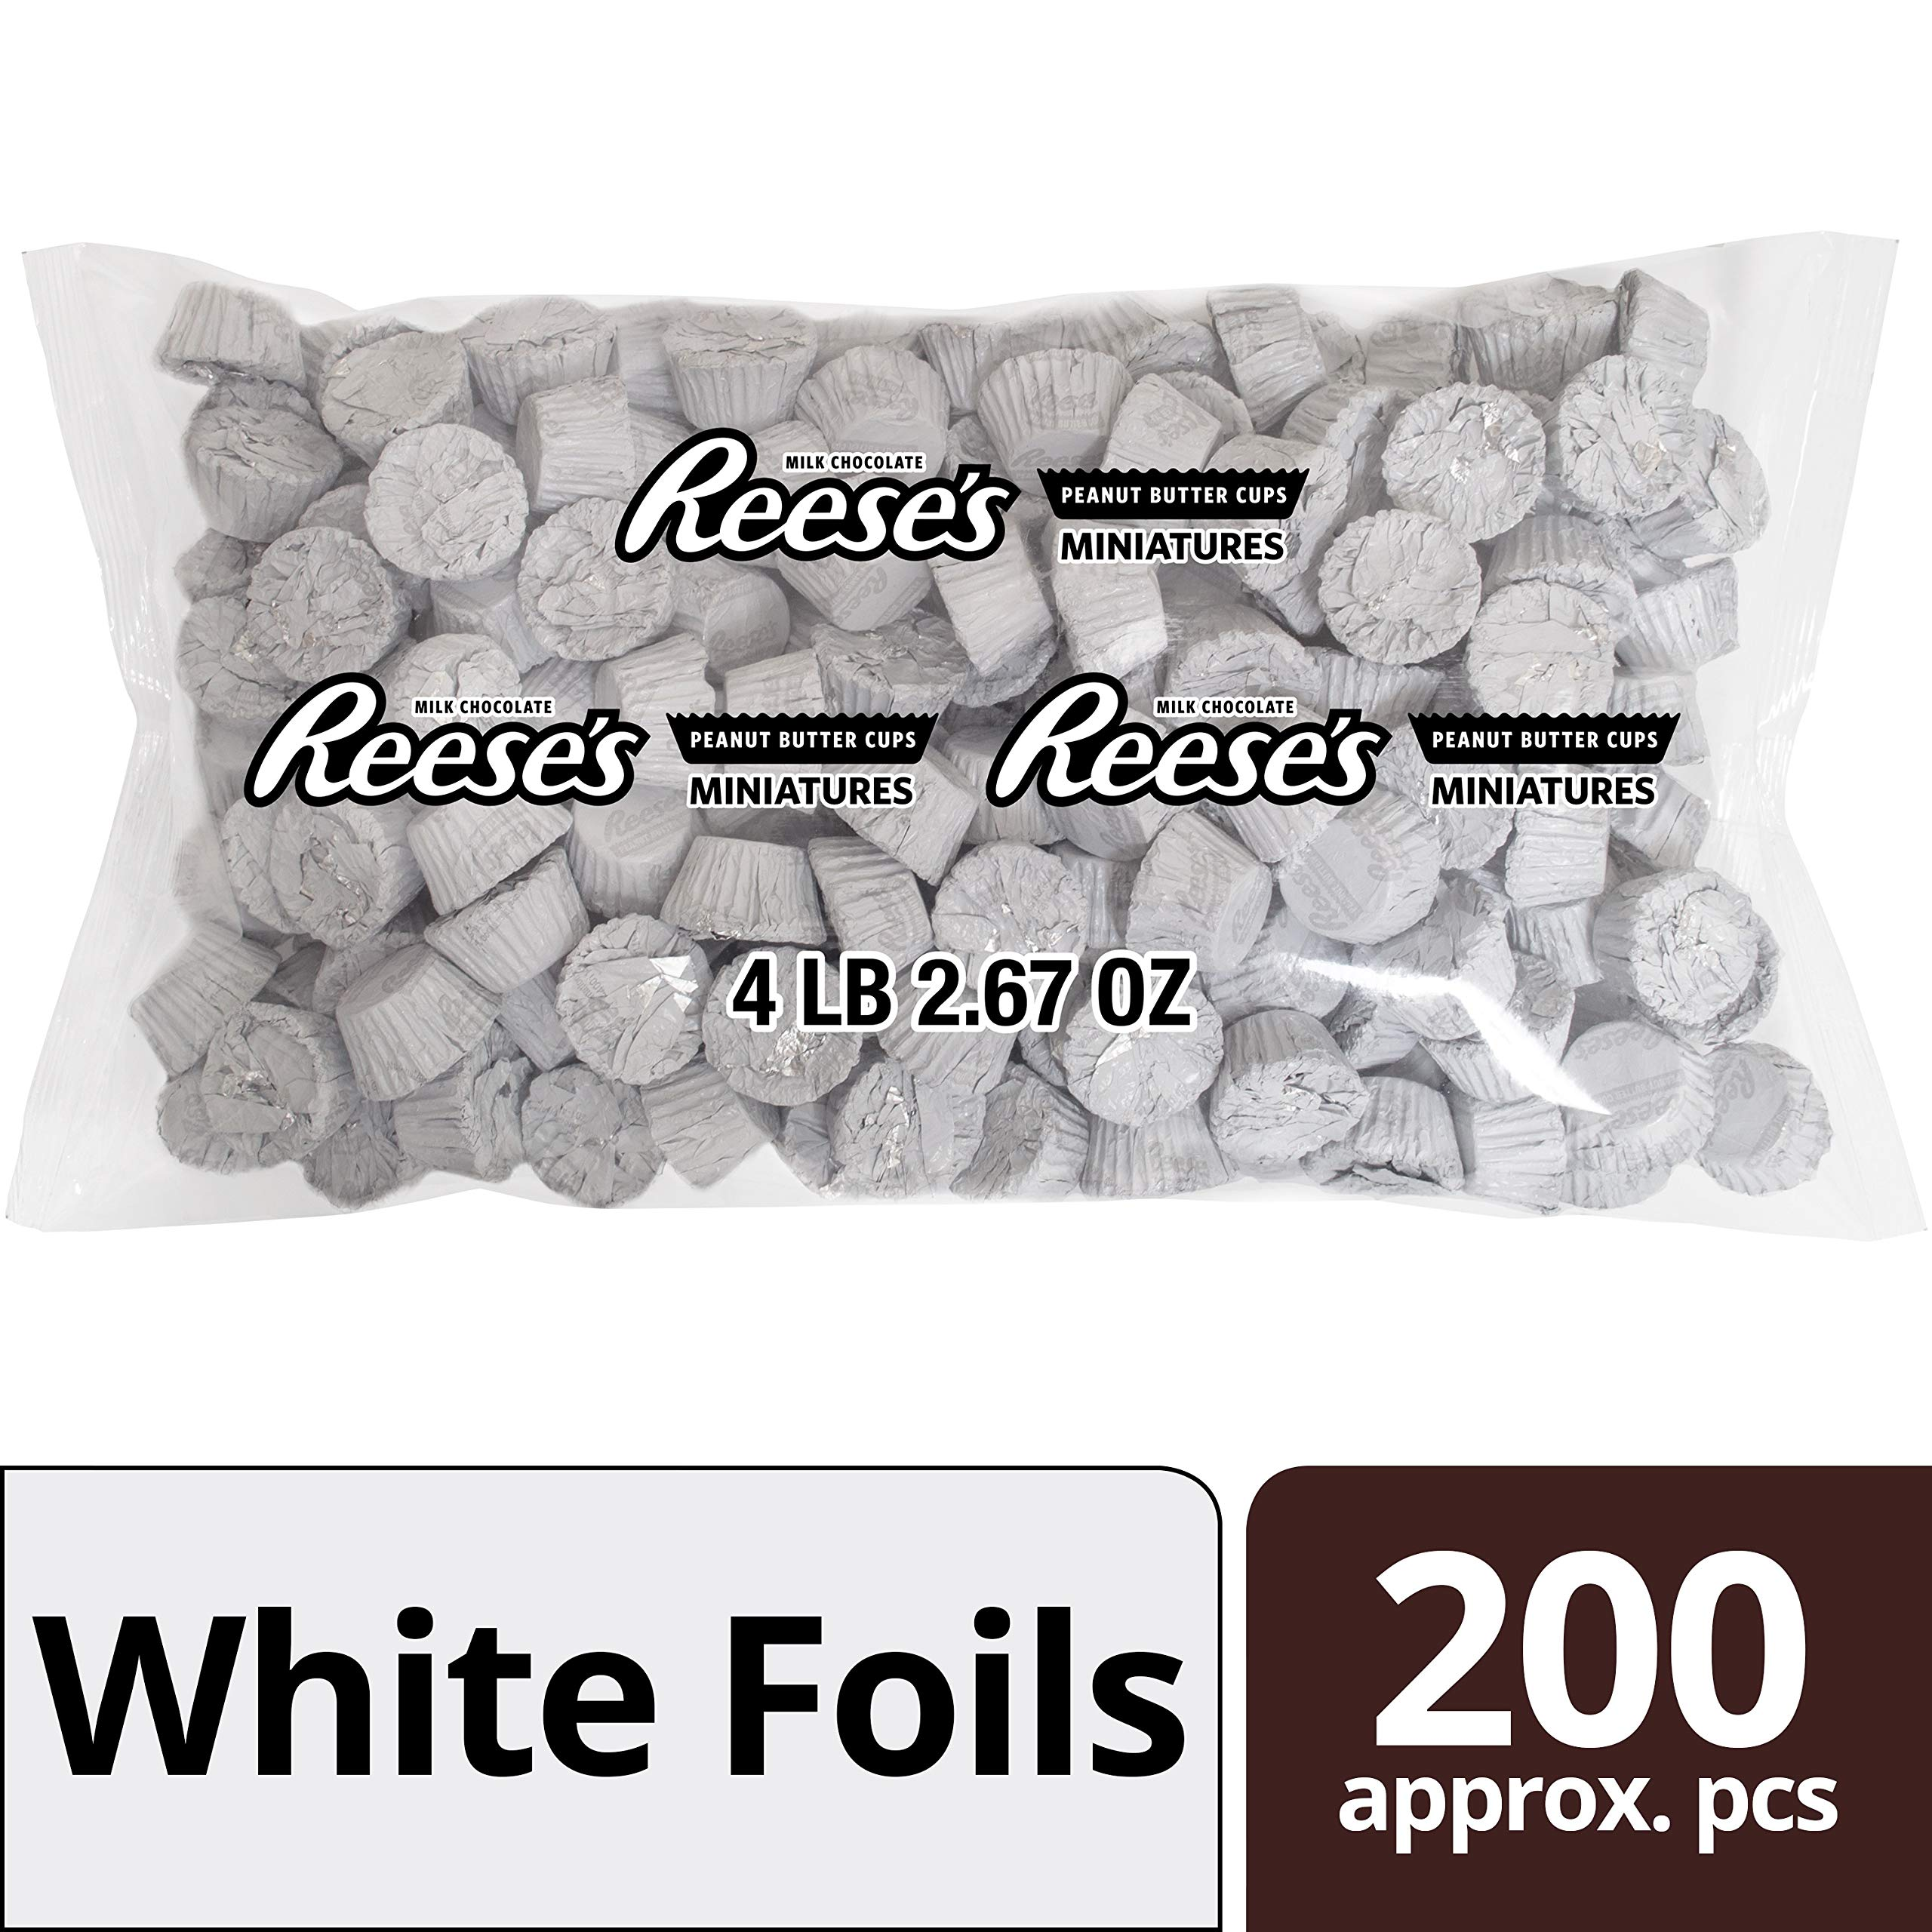 REESE'S Peanut Butter Cups, Chocolate Candy, Miniatures, White, 66.7 Ounce Bulk Candy by Reese's